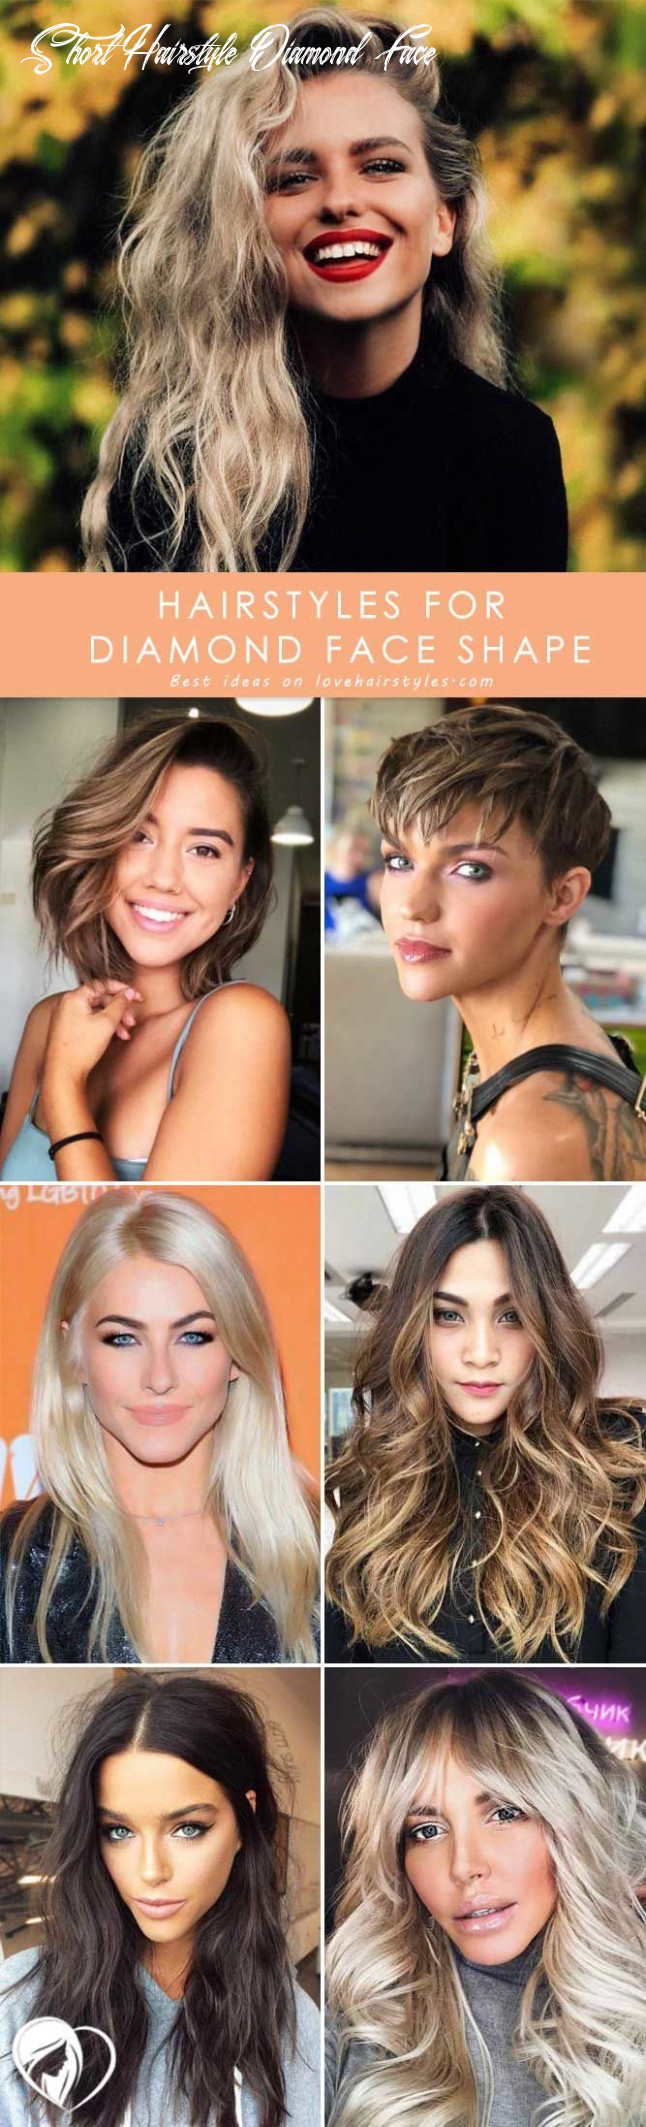 11 flattering haircuts and hairstyles for diamond face shape short hairstyle diamond face